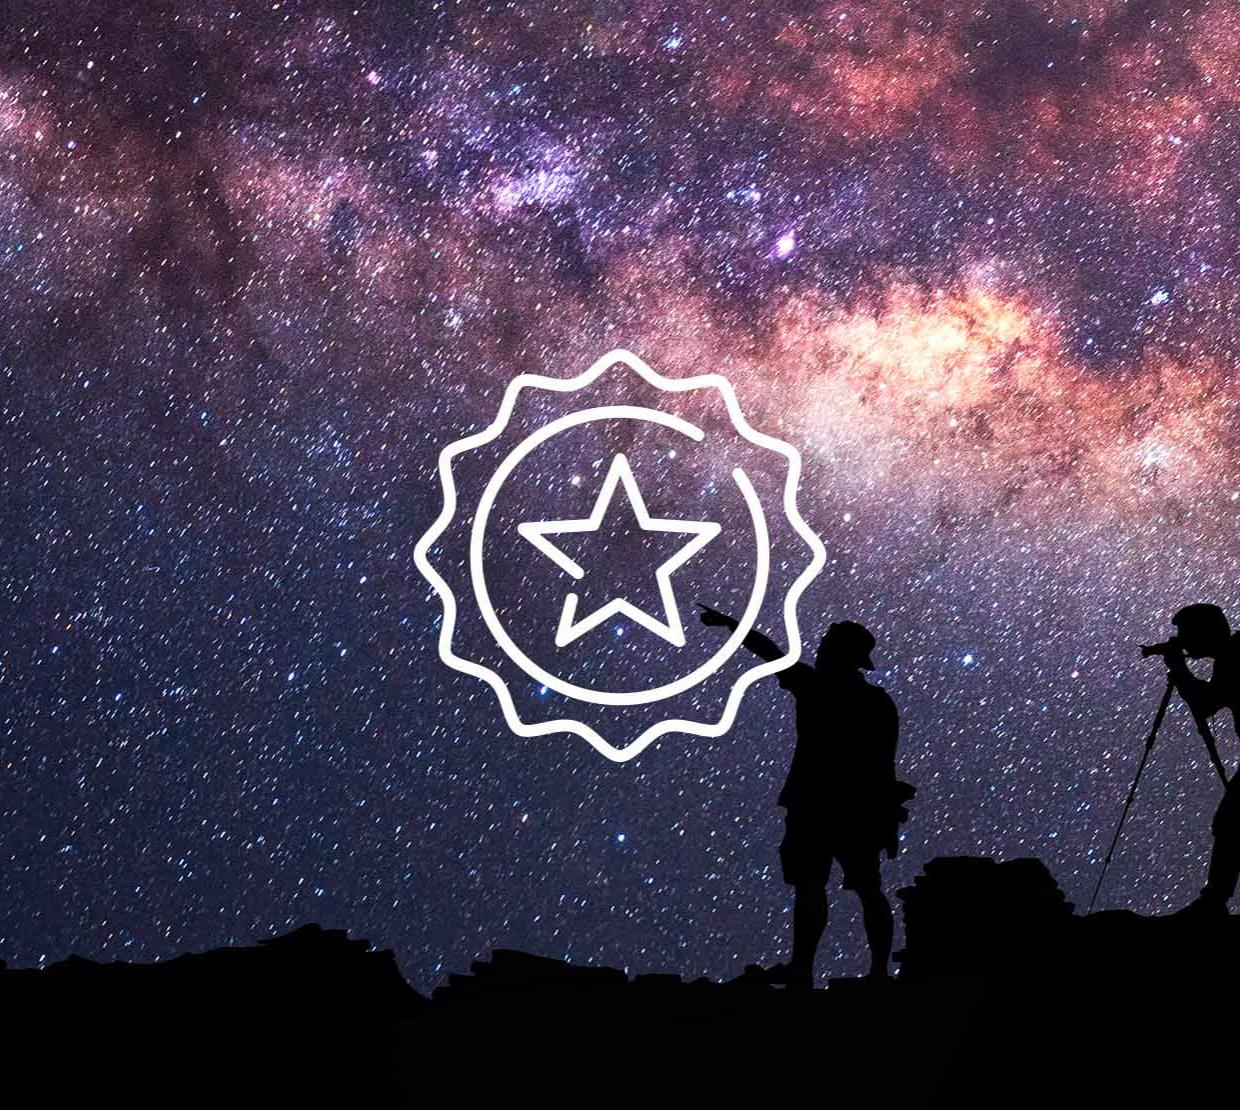 Star icon above starry night sky with two silhouettes of explorers